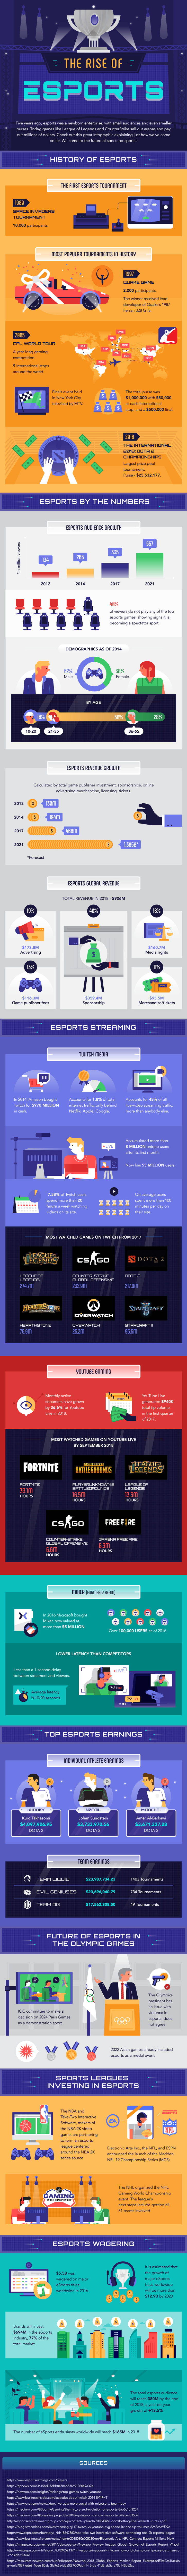 E-sports: Not Just for Nerds (Infographic)